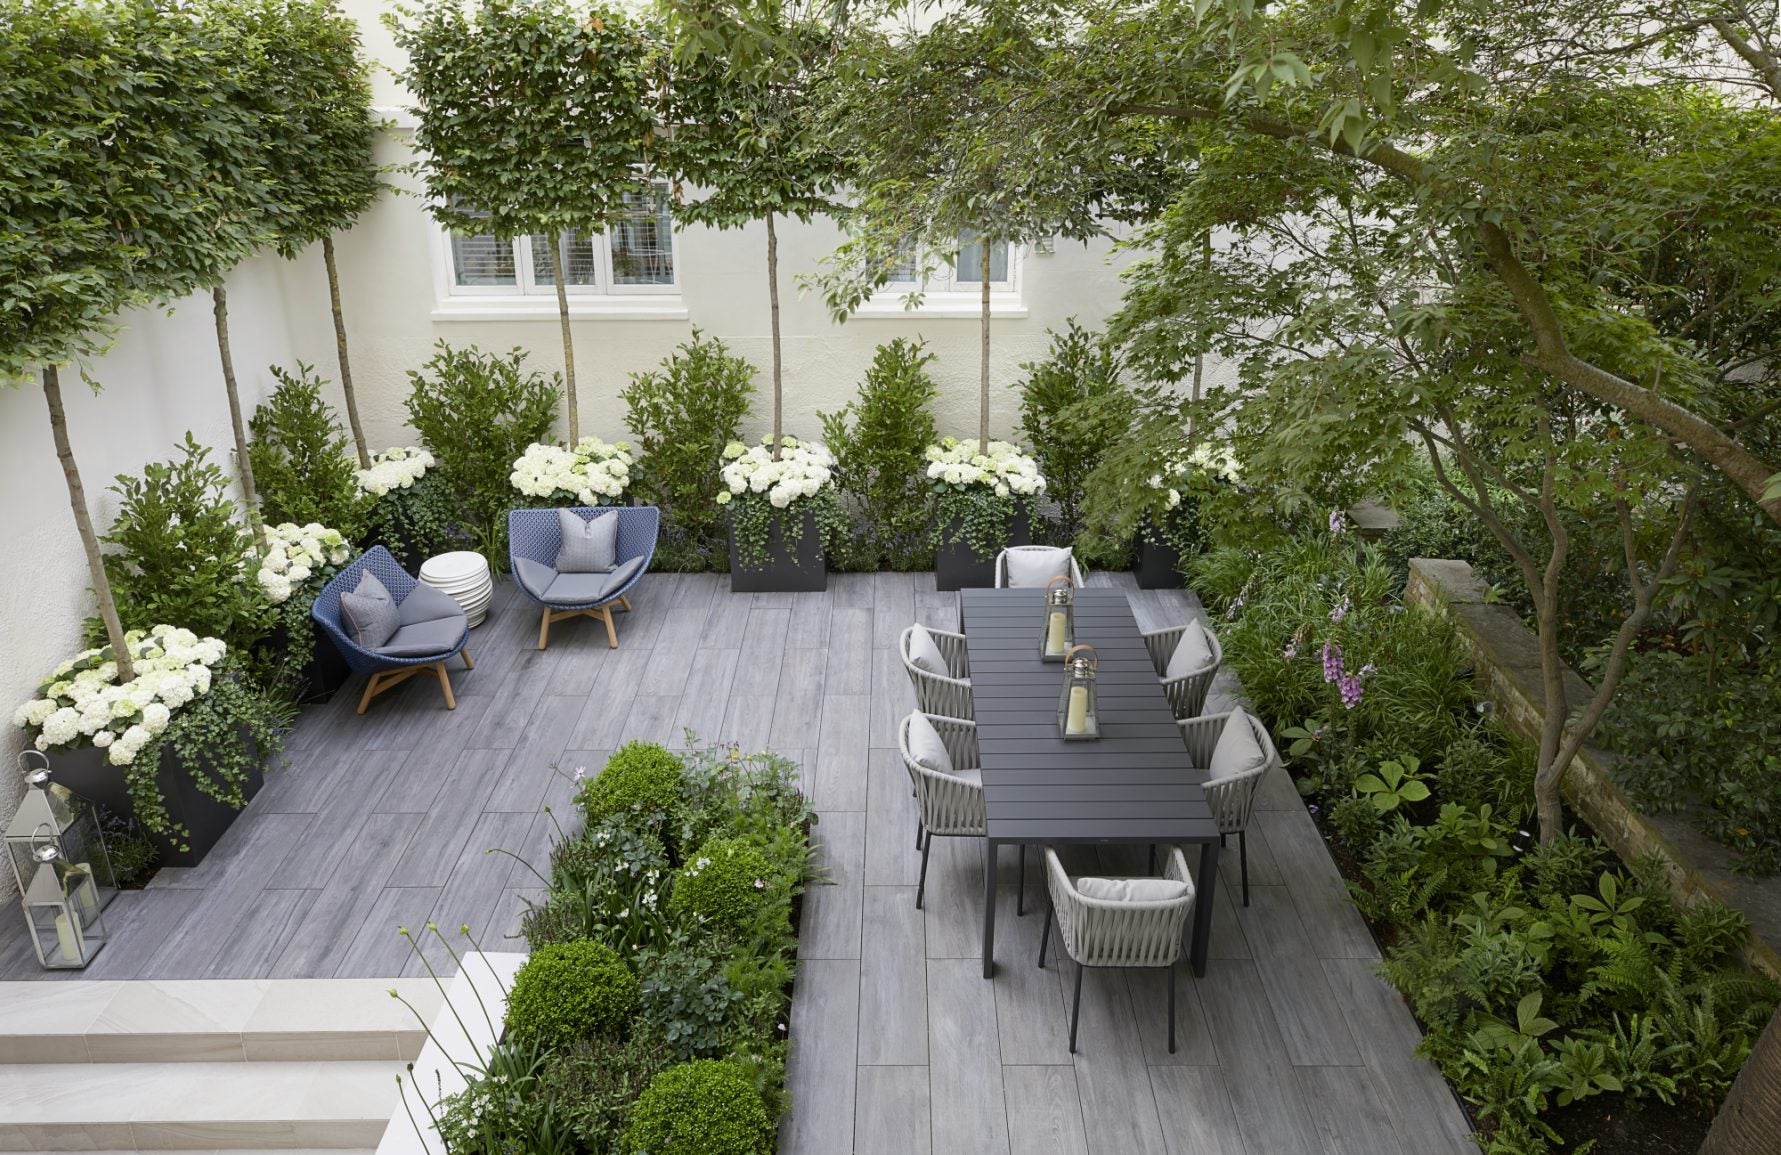 City Garden Ideas | Finchatton | Read more in The Luxurist | LuxDeco.com